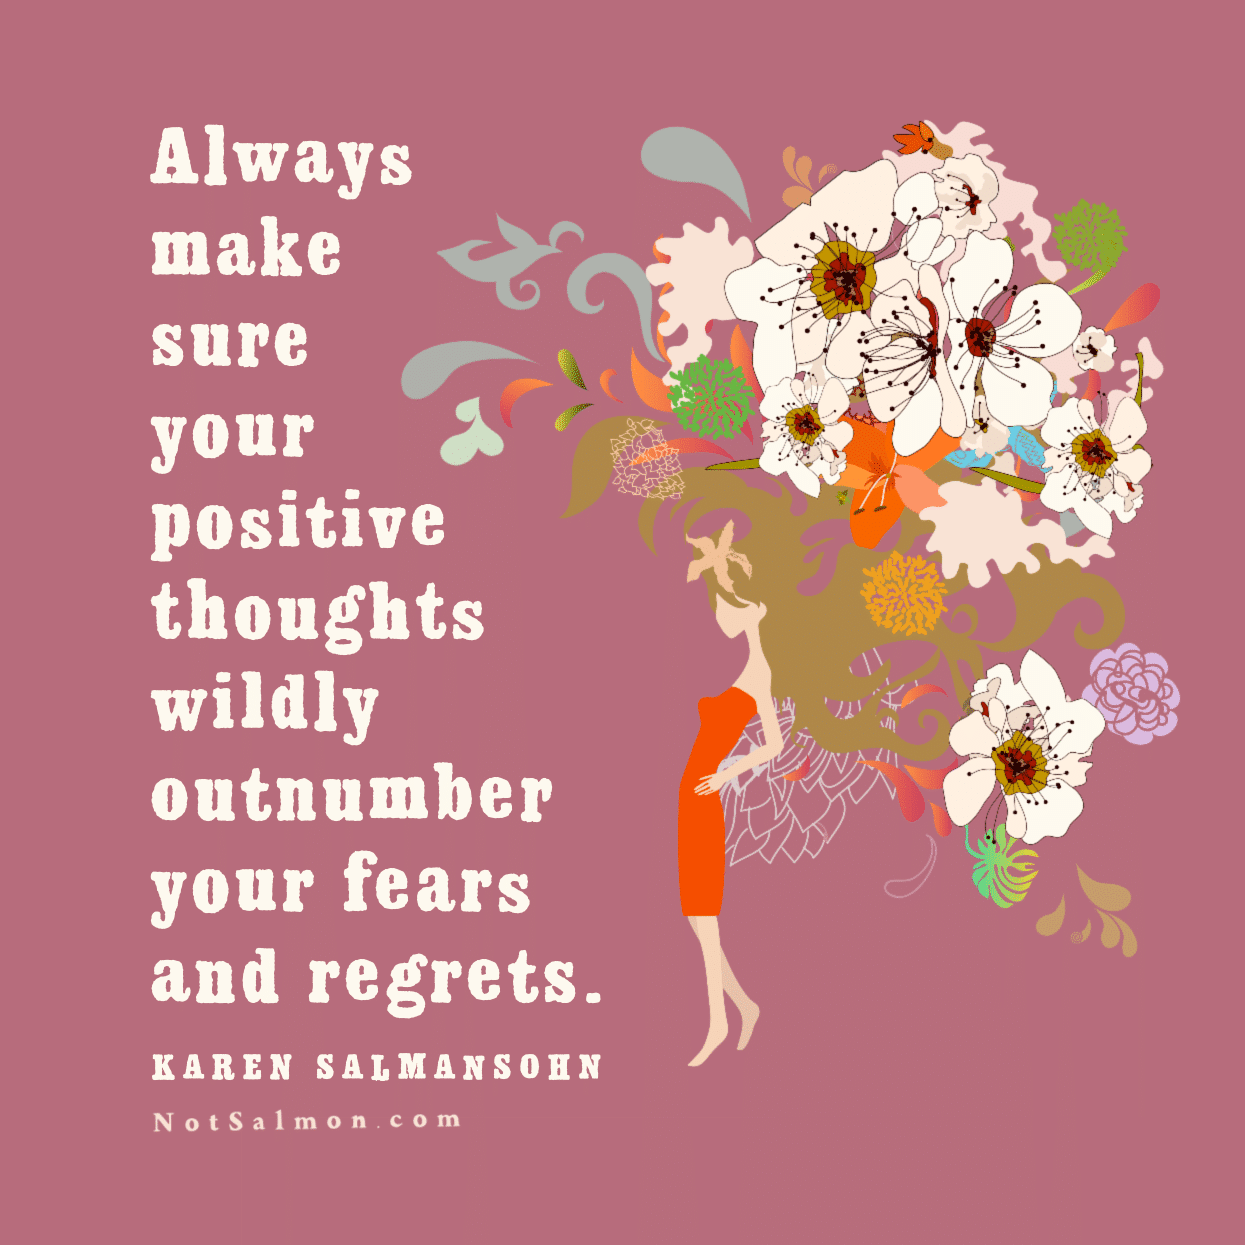 positive thoughts outnumber fears and regrets salmansohn quote